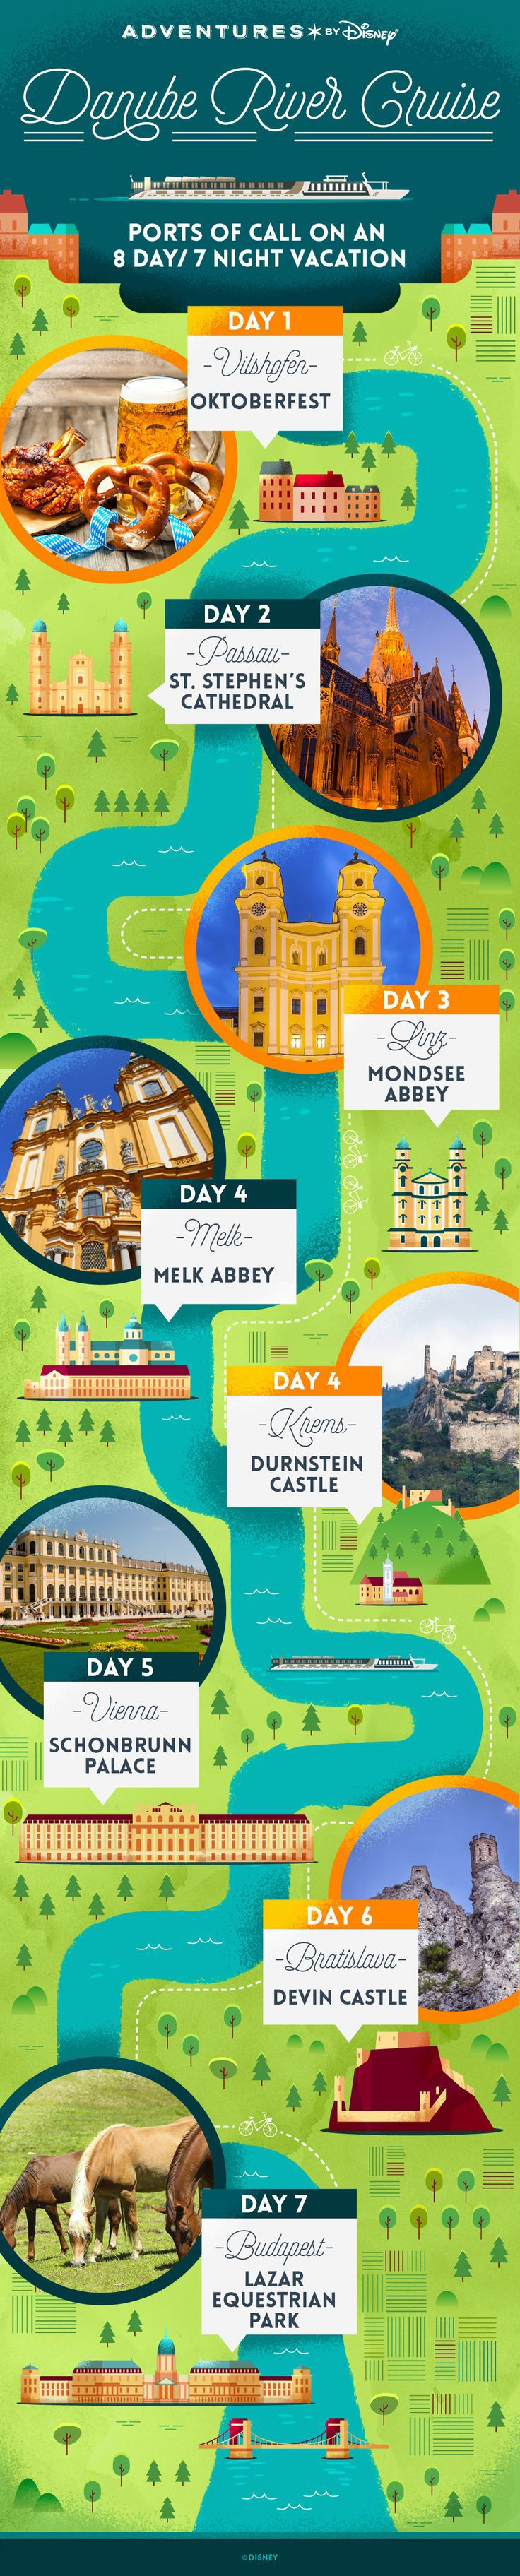 You can enjoy family river cruising to eight unforgettable destinations in four countries on an all-inclusive adventure along the Danube River with Adventures by Disney. From Schonbrunn Palace to the famed Melk Abbey in Austria, there is something for the whole family to enjoy! For more information about Adventures by Disney, see: http://www.disneywebcontent.com/?msid=10921